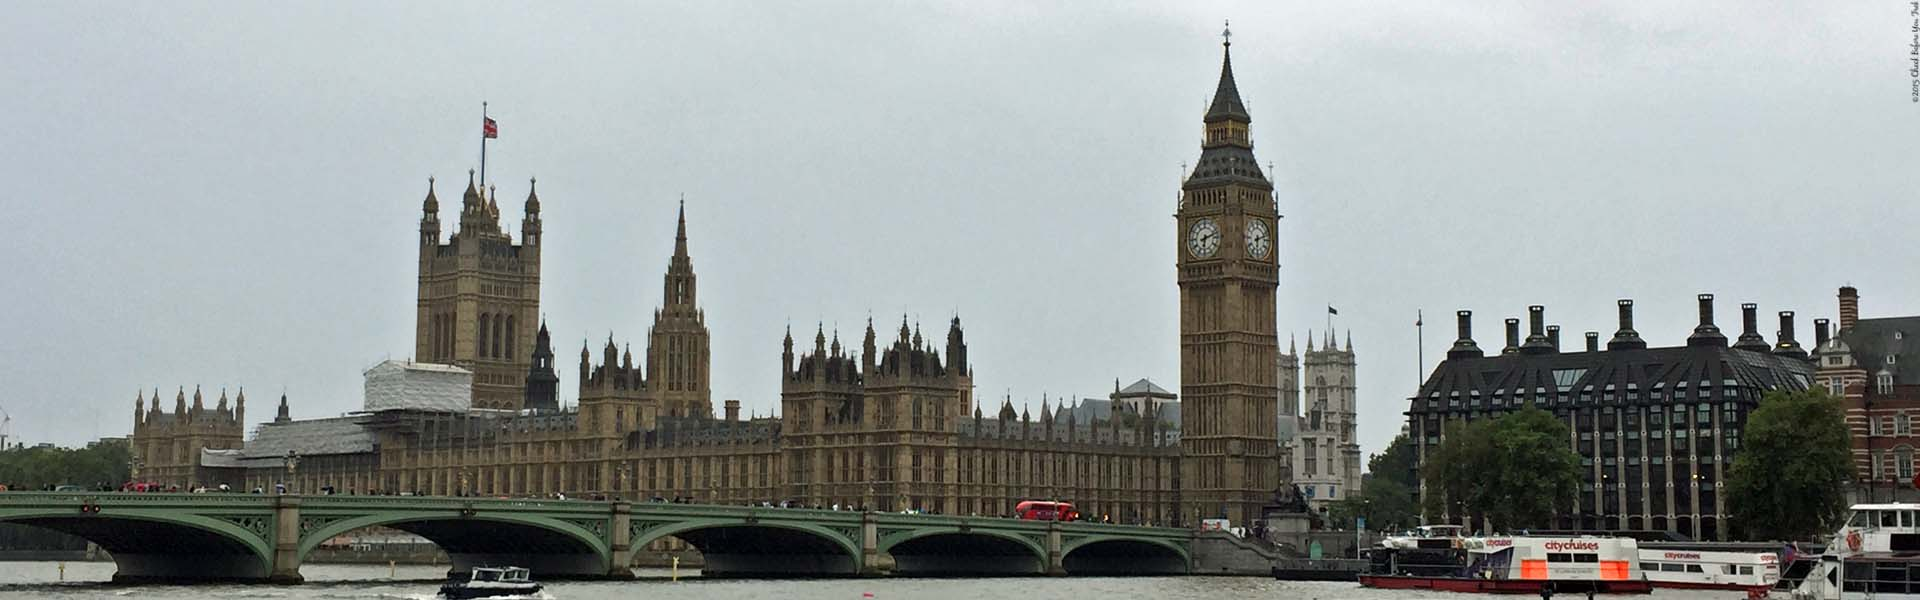 "Houses of Parliament. Featured photo for the page ""Home"" (Photograph from the website: Check Before You Trek)"